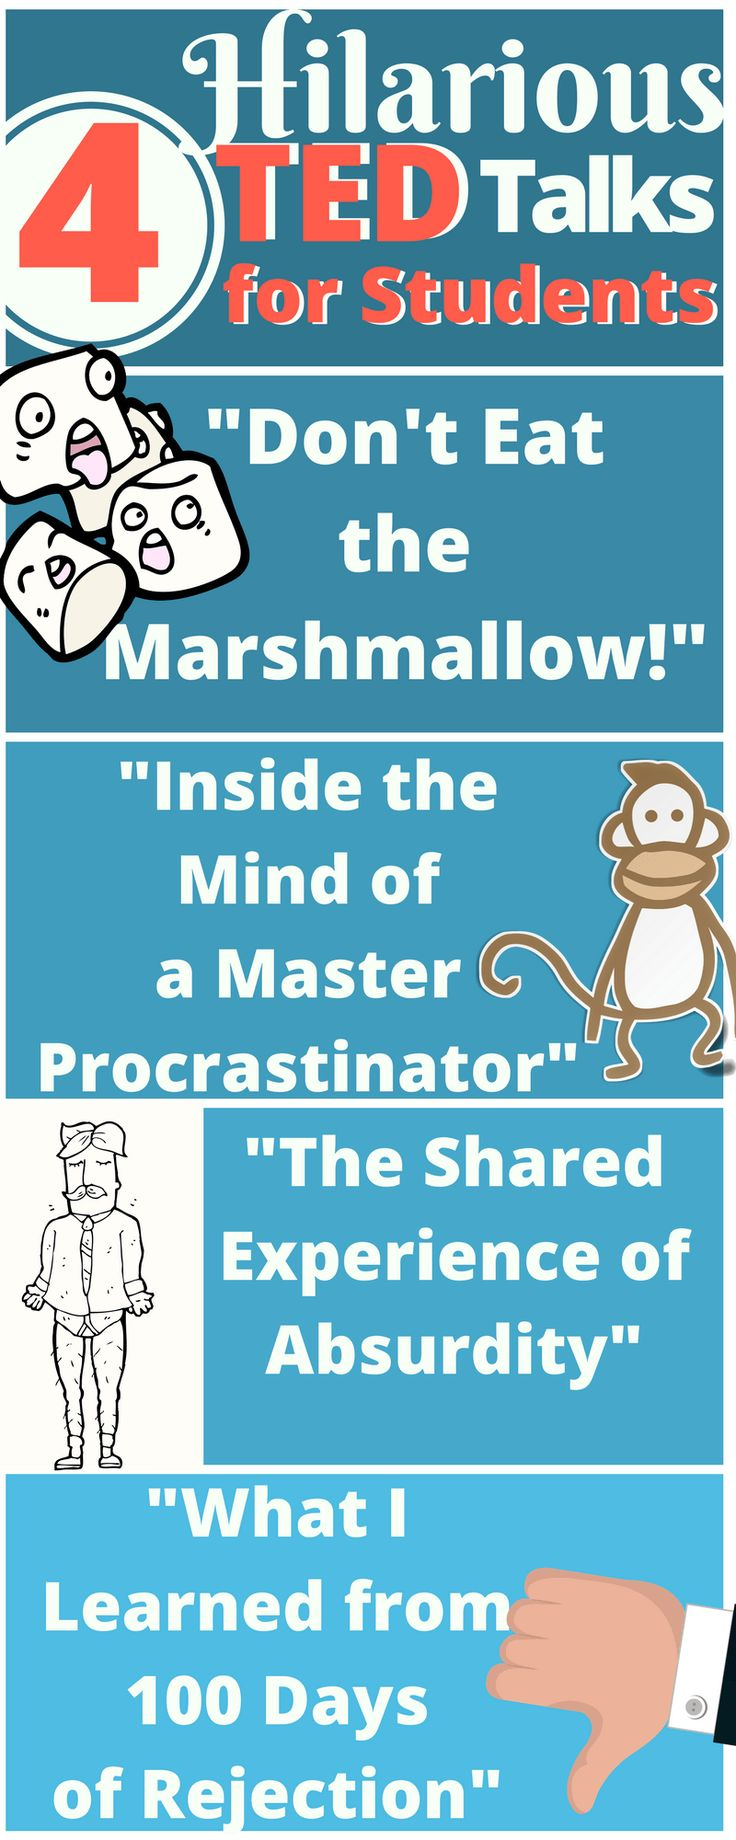 Now 5! Students love these funny Ted Talks that also inspire and teach valuable lessons.  Marshmallow one understandable for younger!